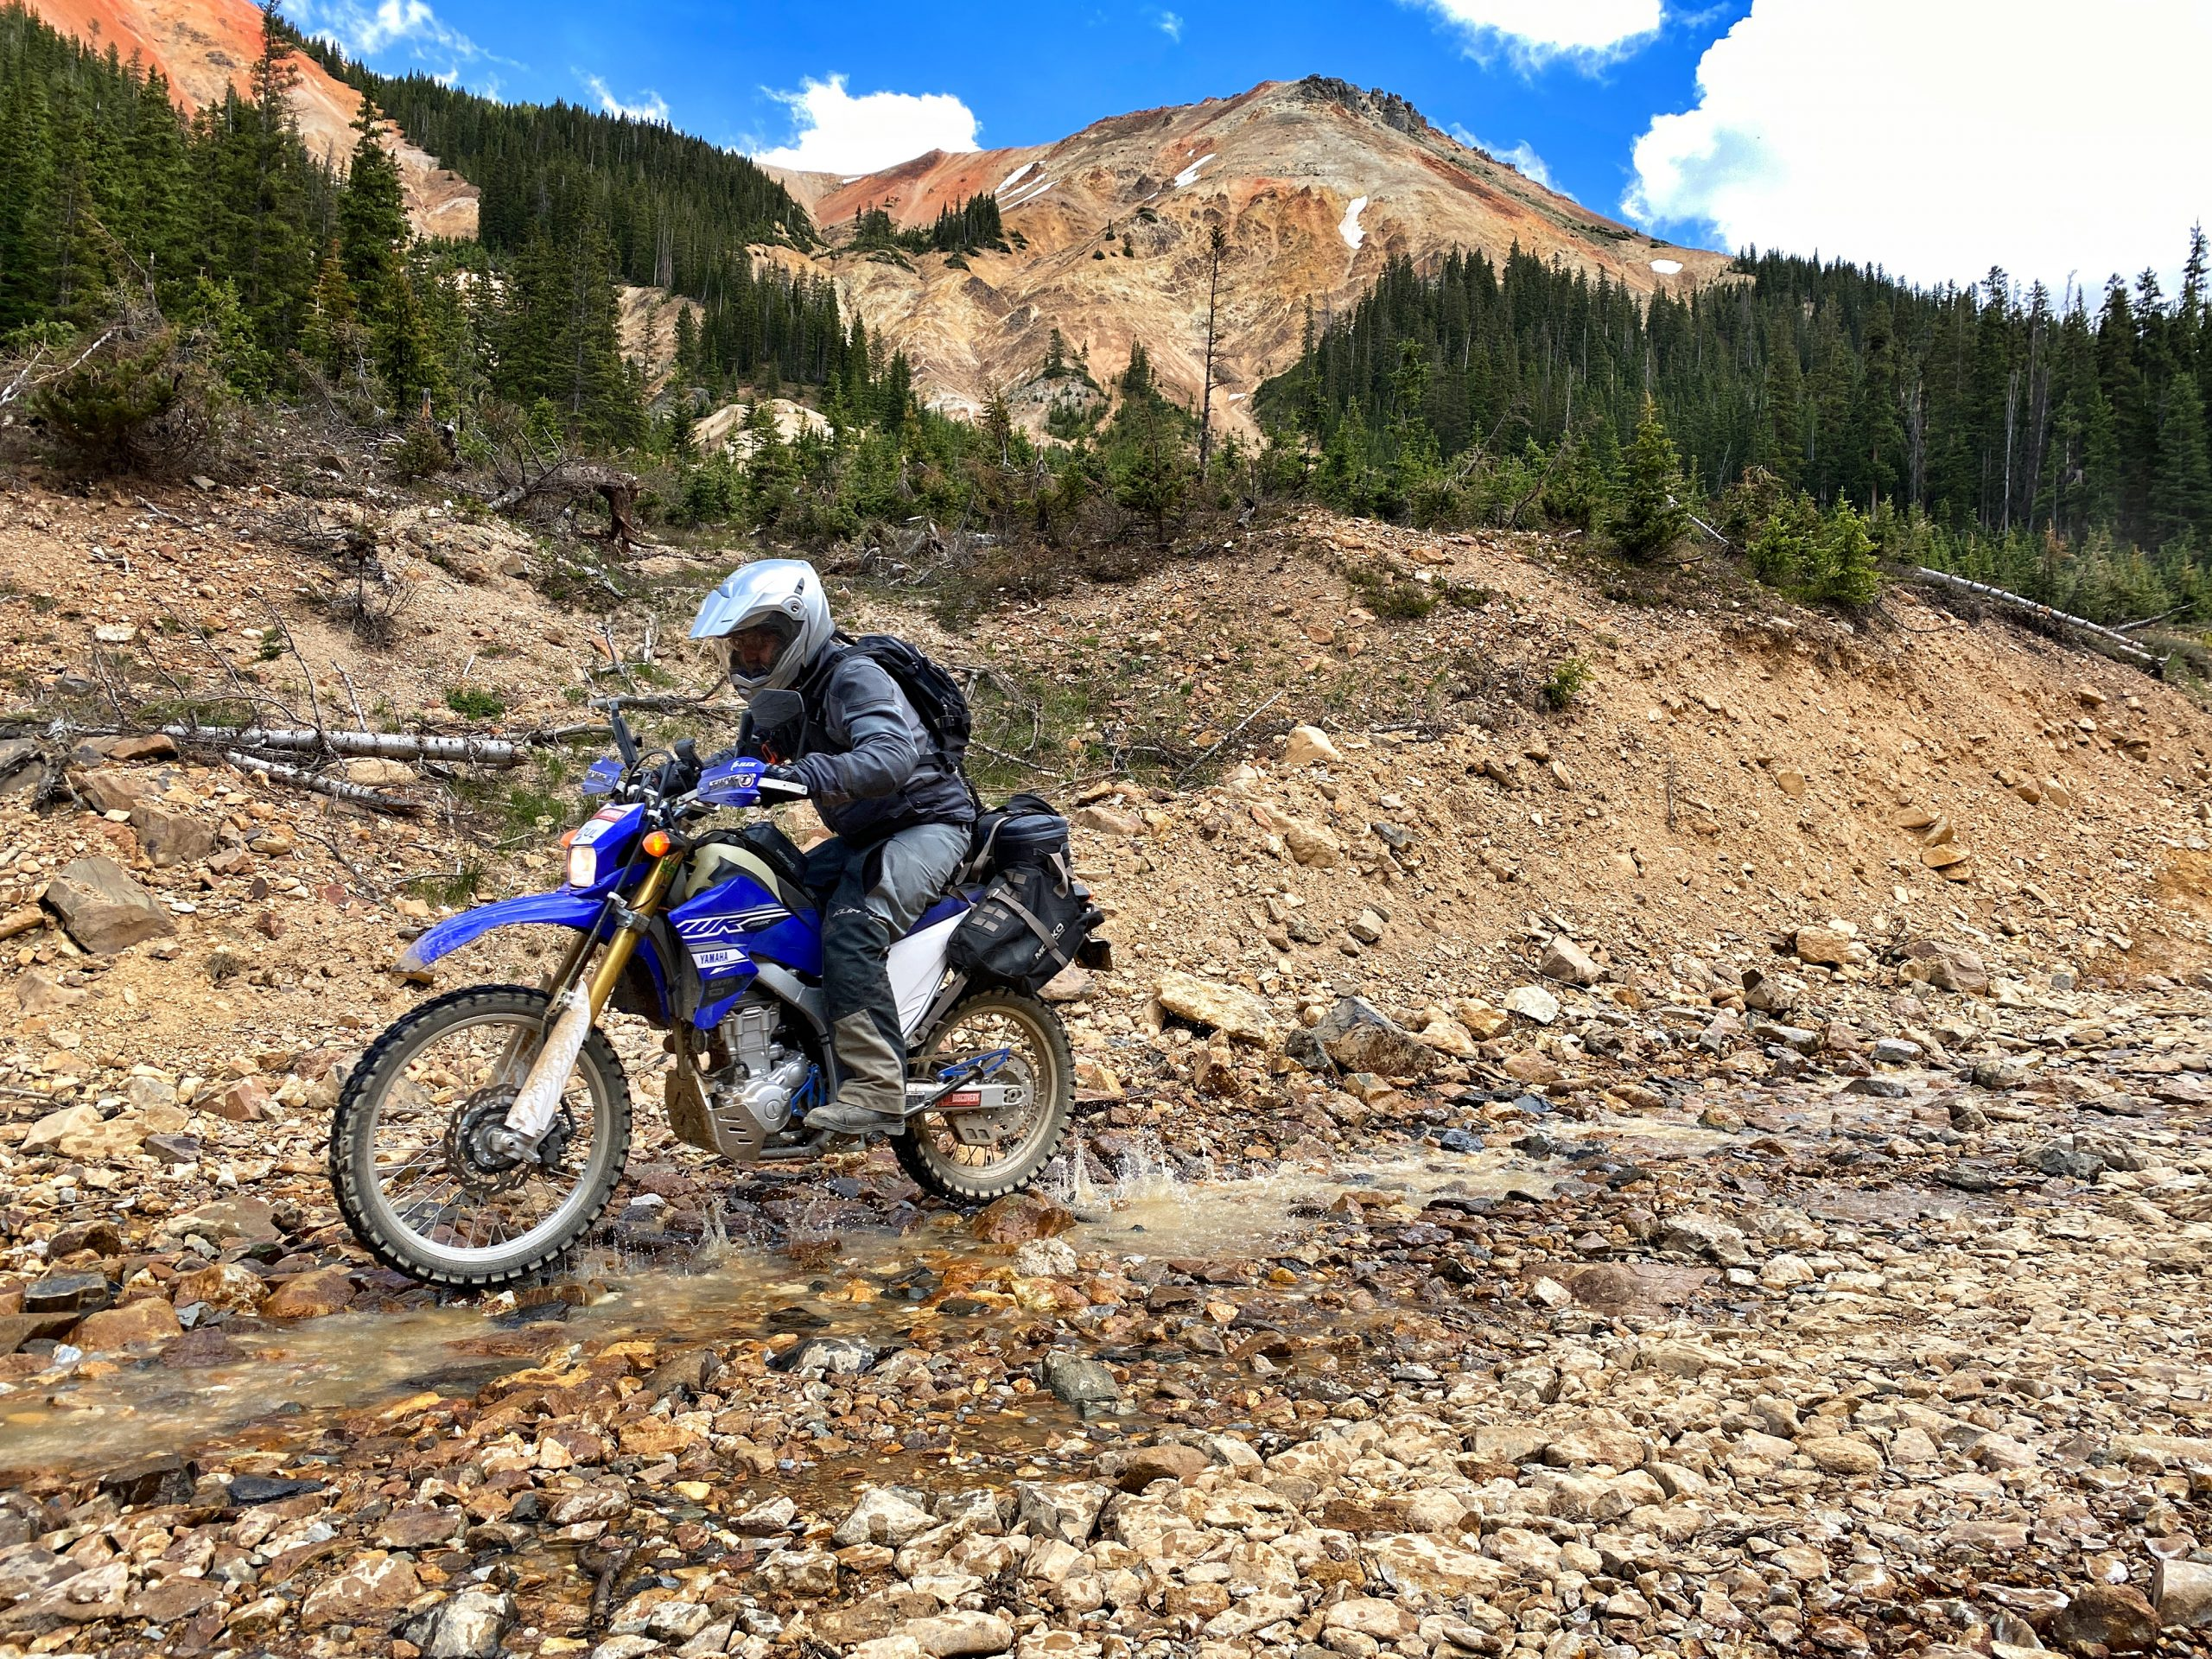 Rent a Yamaha WR250R to Explore the wilds of Arizona and Colorado